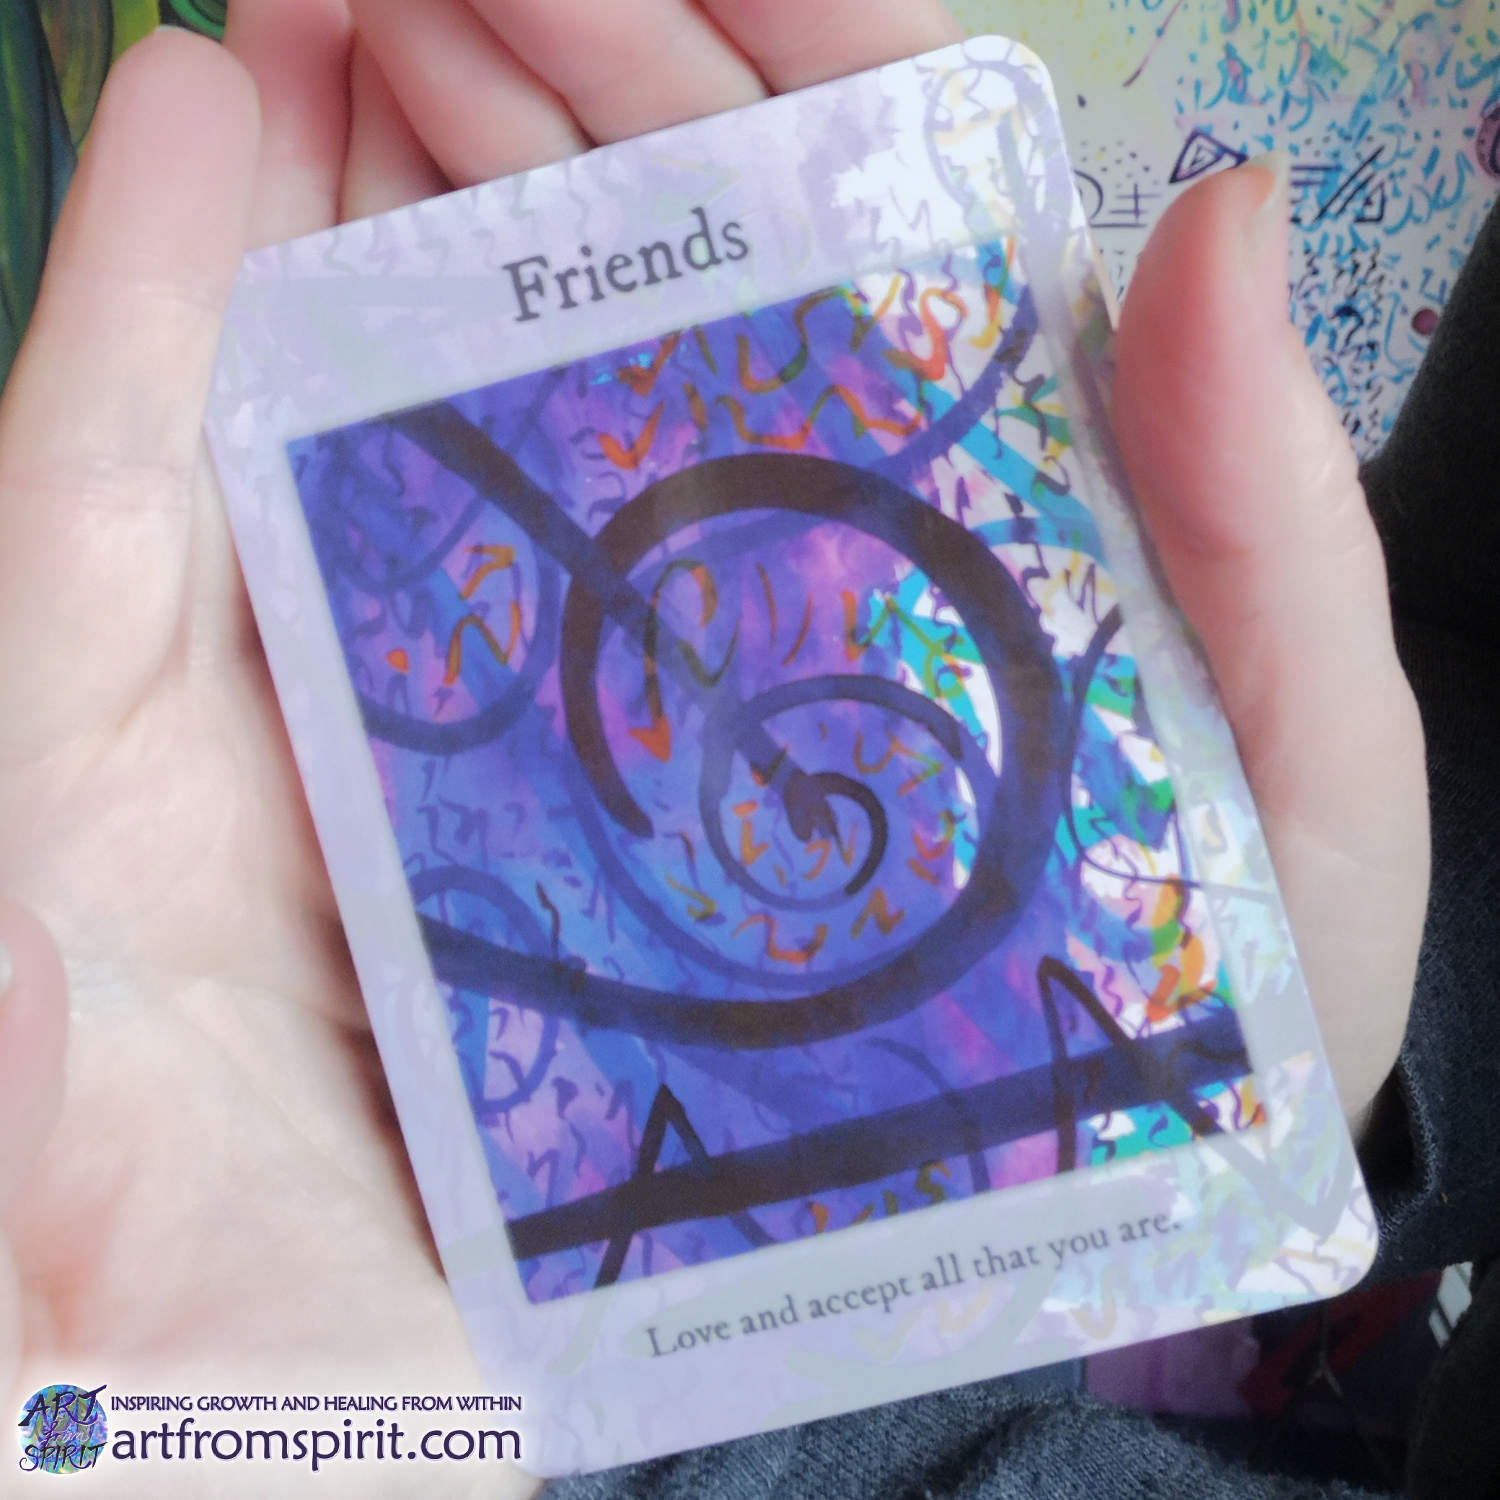 friends-art-from-spirit-tegan-neville-spiritual-self-discovery-inspirational-cards-inspiration-card.jpg